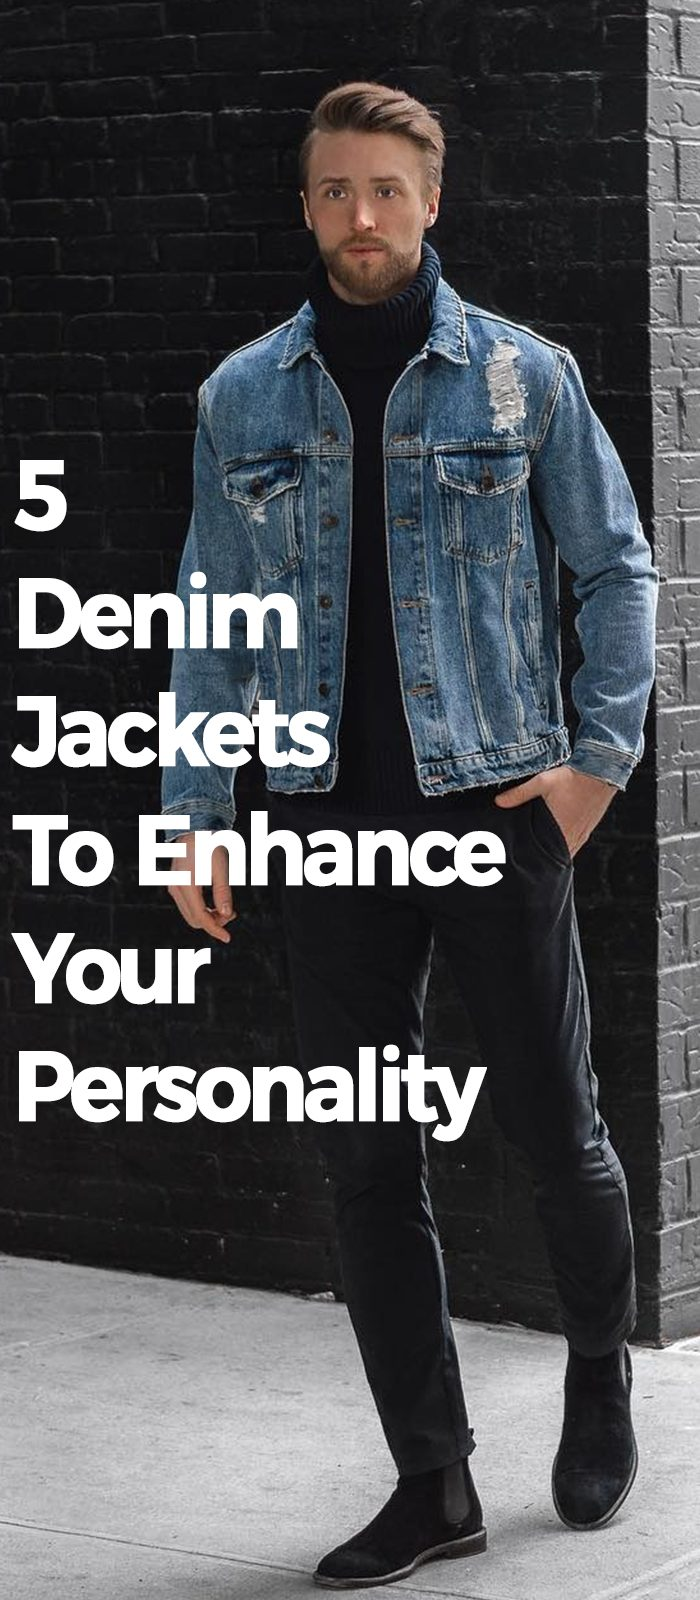 5 Denim Jackets To Enhance Your Personality